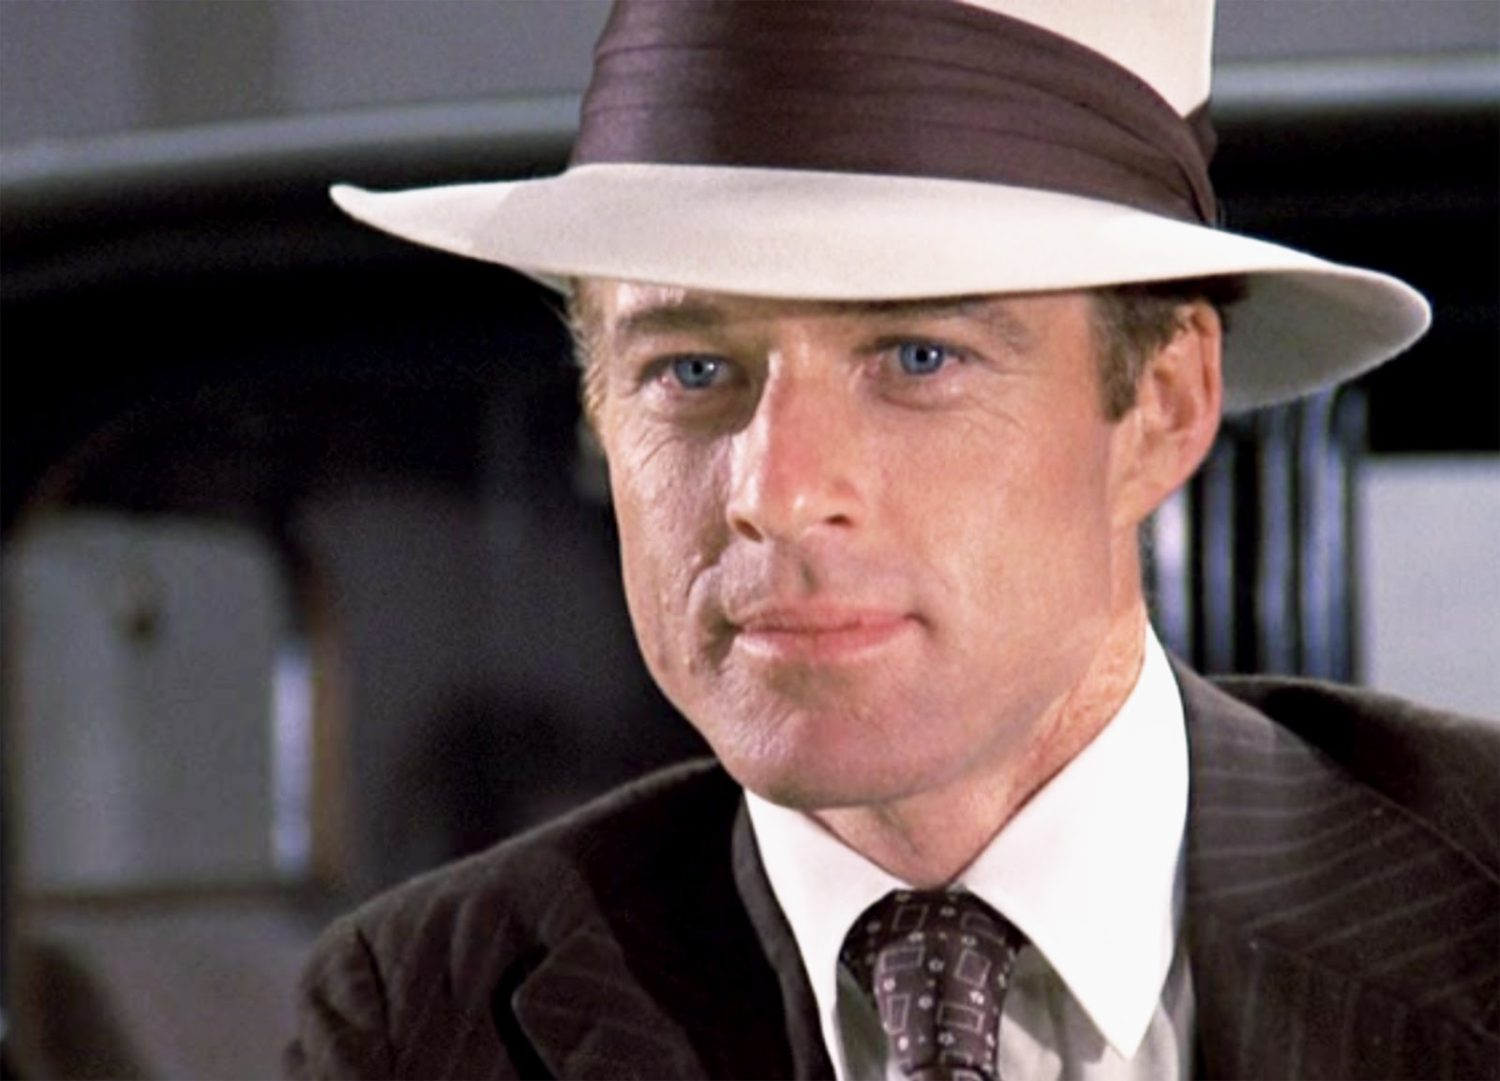 Robert Redford wears a Panama hat in the Great Gatsby in 1974